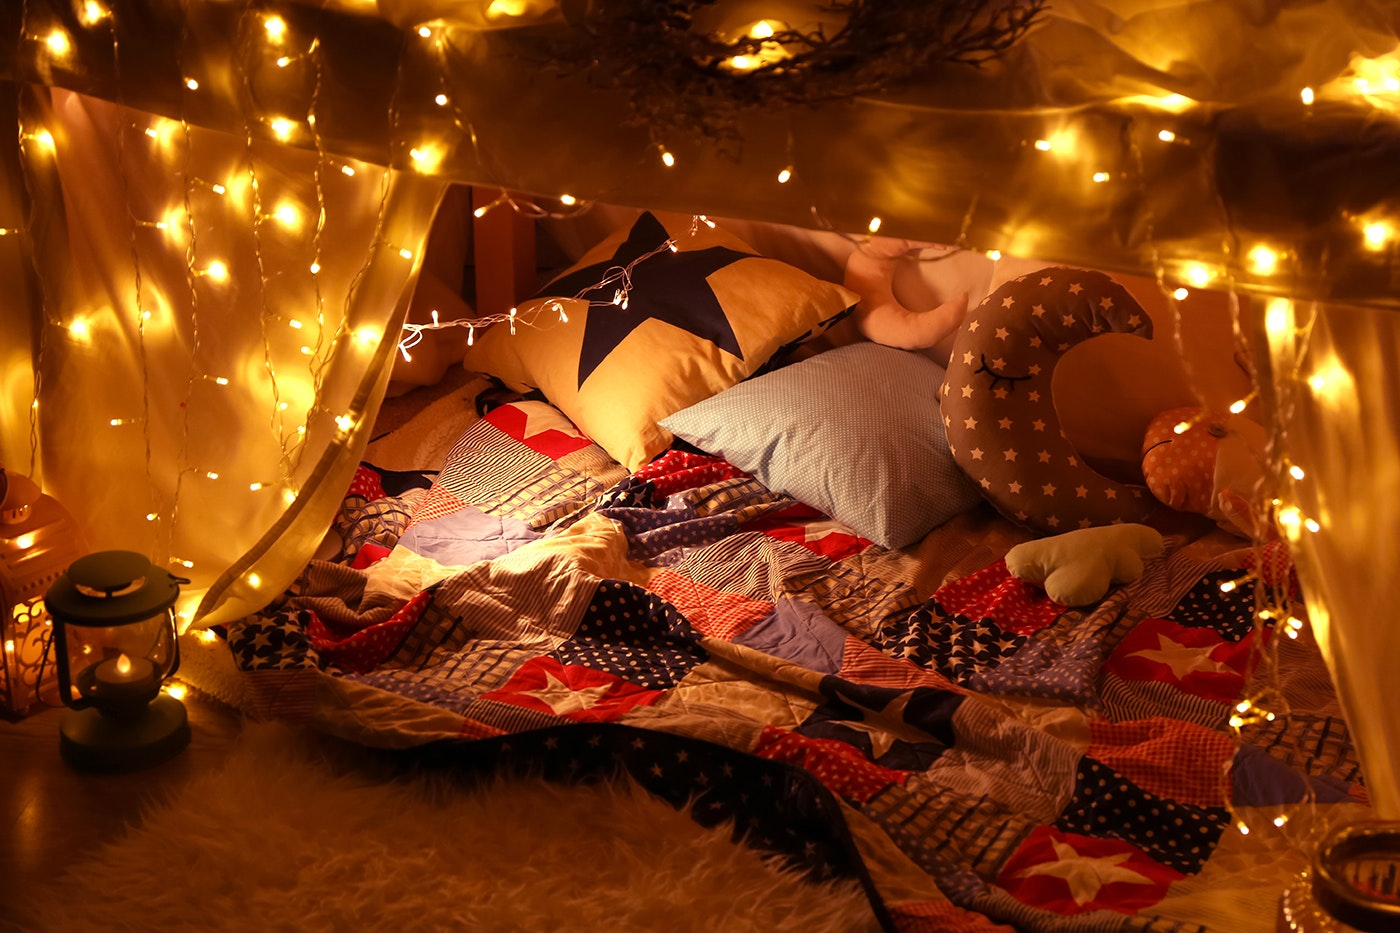 Blanket fort decorated with pillows and string lights.